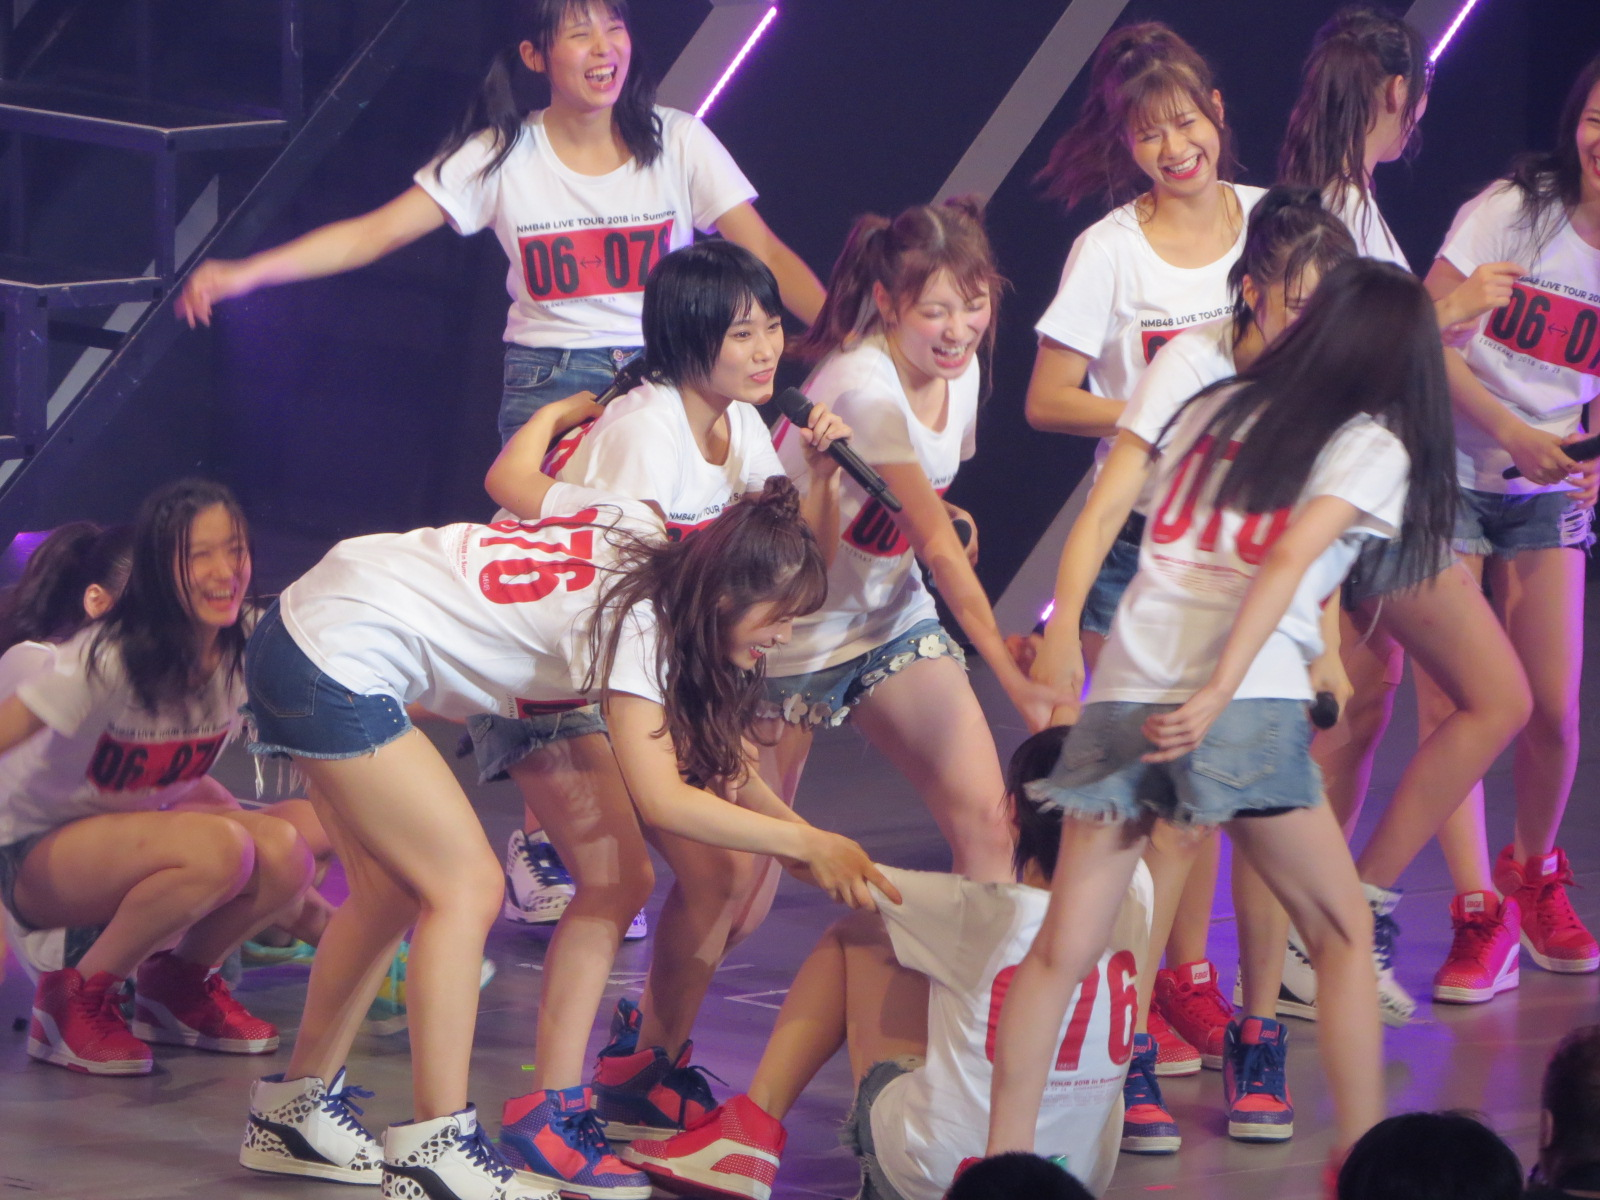 NMB48 LIVE TOUR 2018 in Summer・石川公演の画像-142